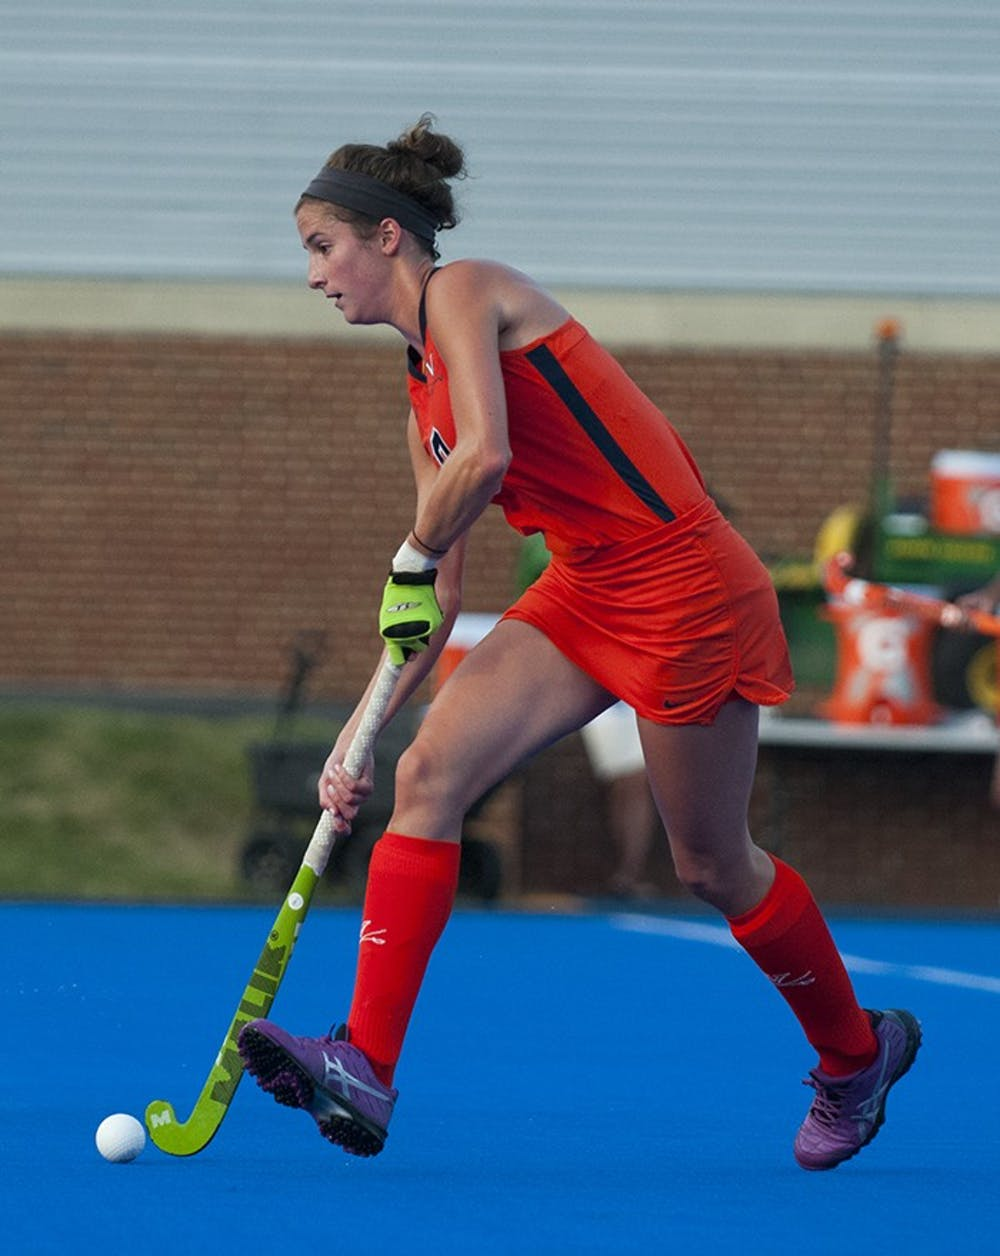 <p>Field hockey is set to play&nbsp;No. 16 Wake Forest and&nbsp;No. 14 Old Dominion this weekend.</p>